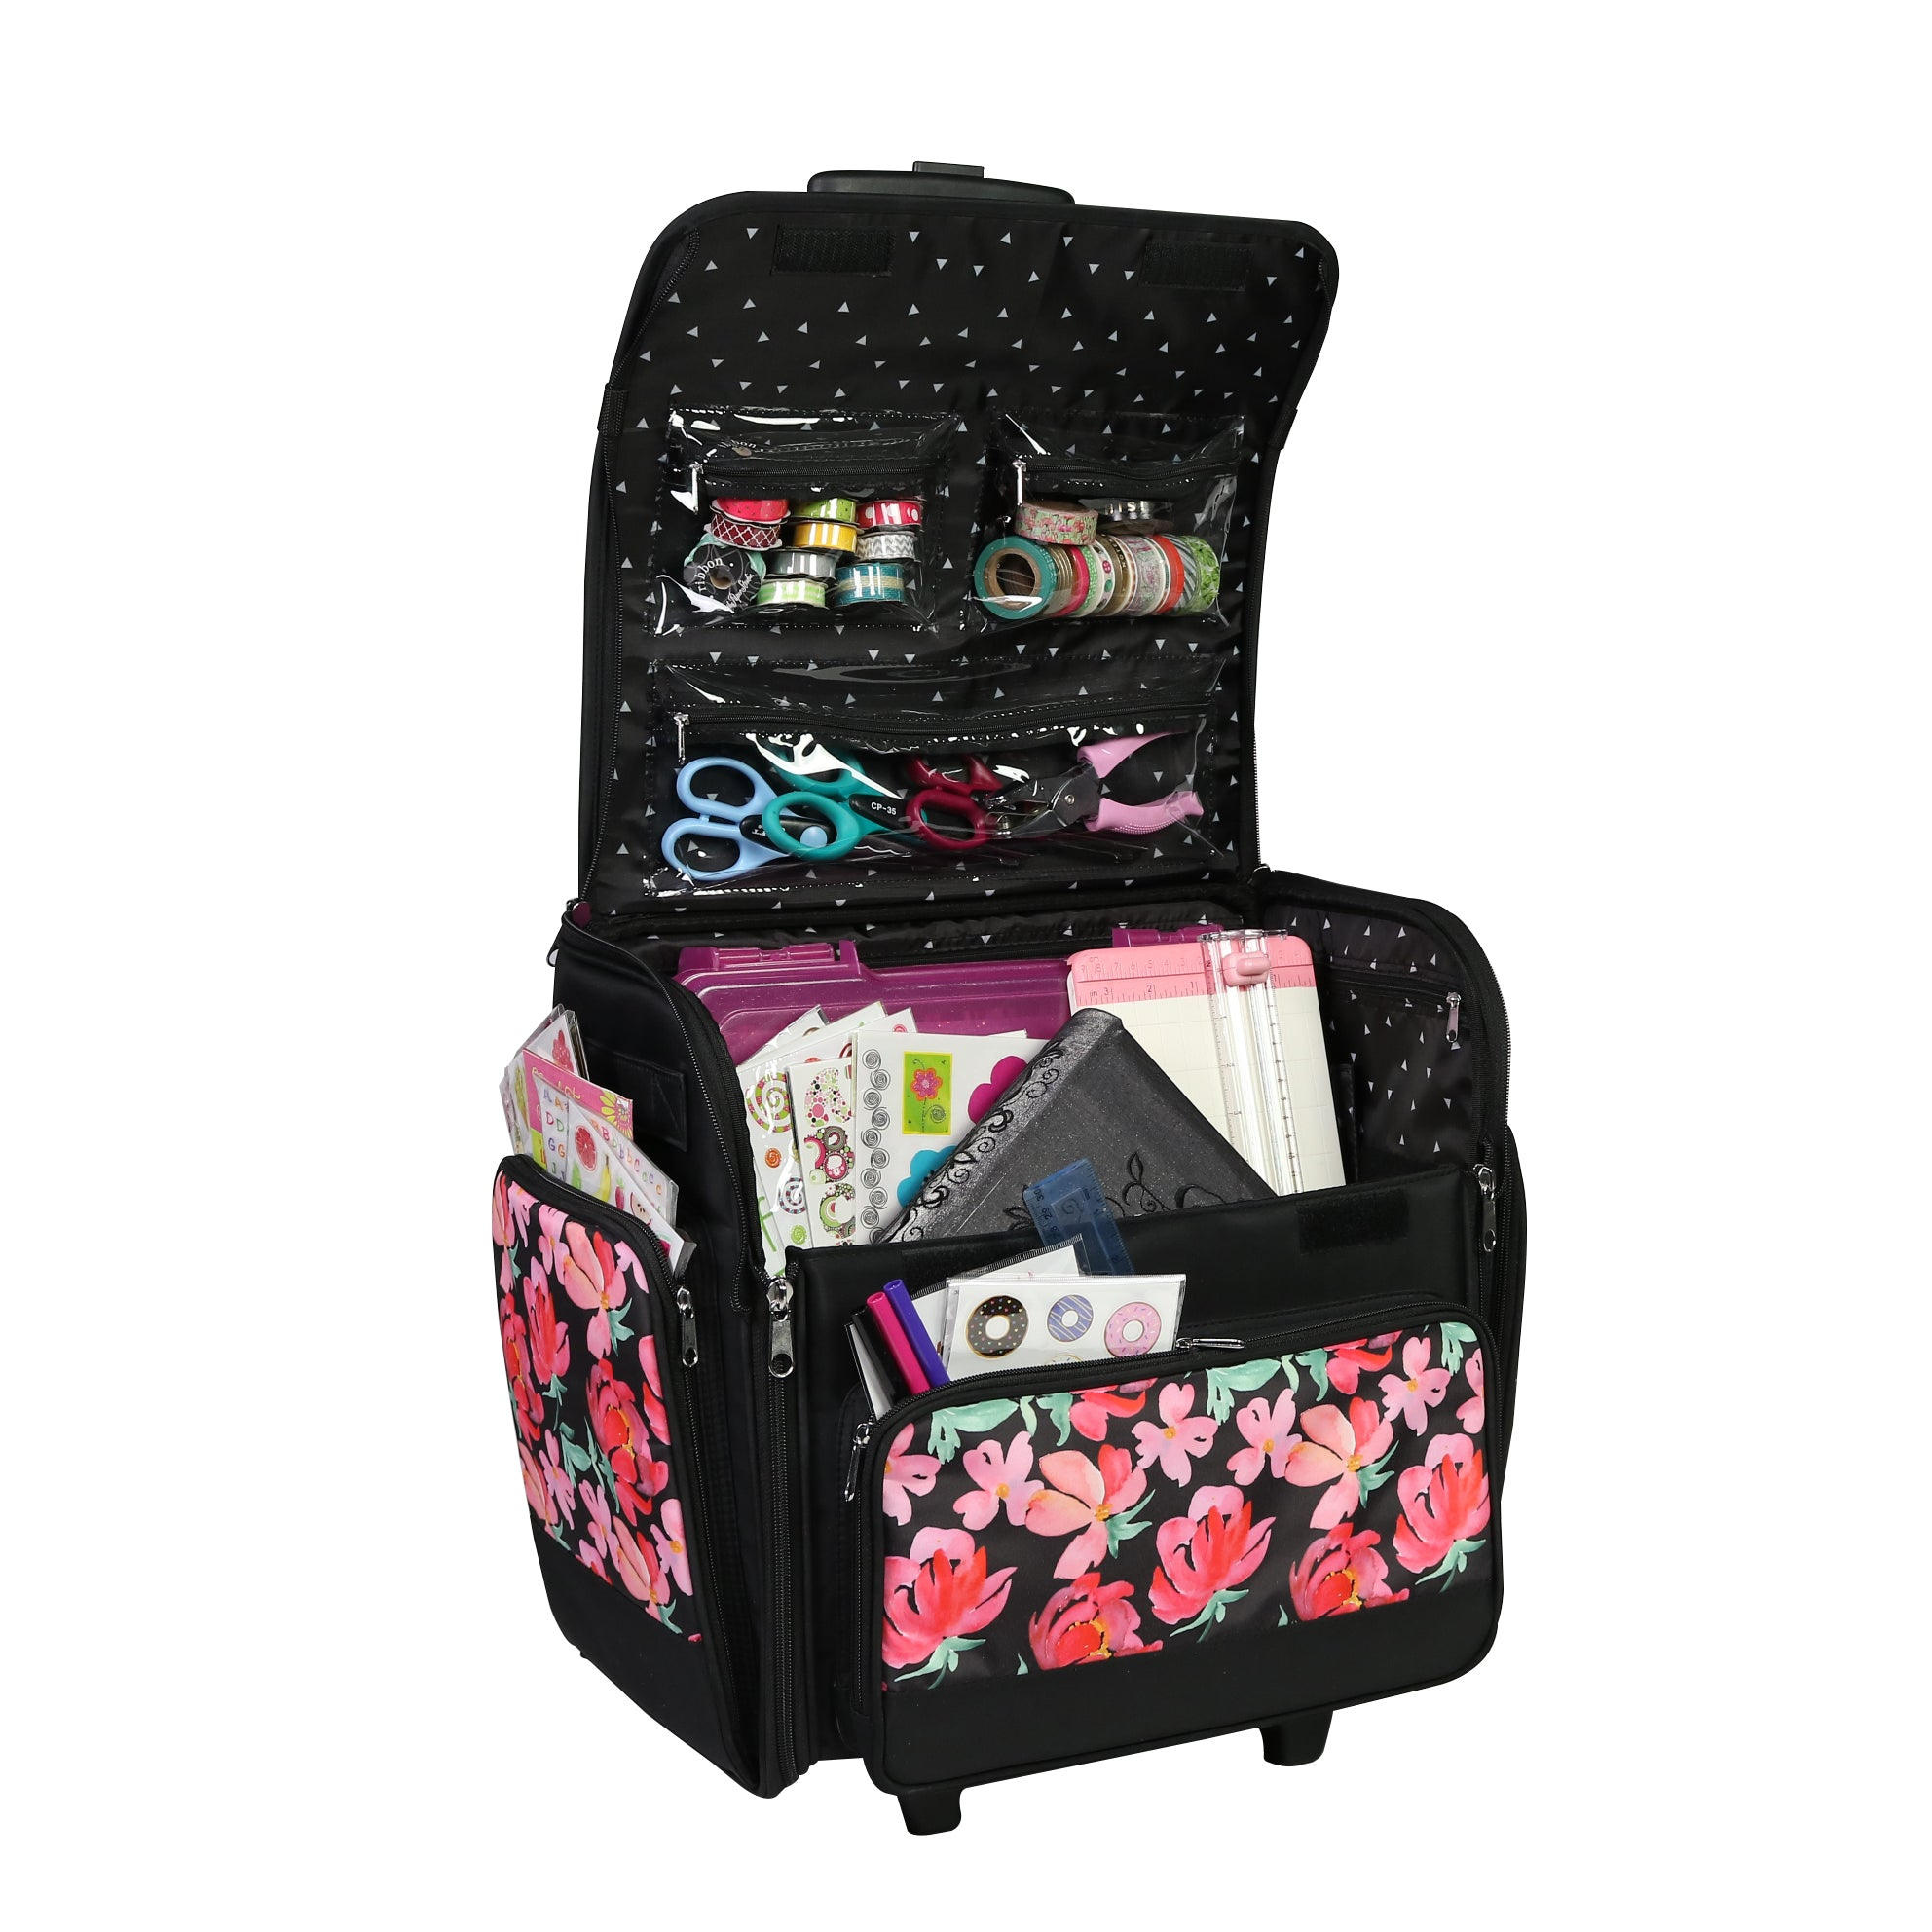 Heather Everything Mary Deluxe Collapsible Rolling Craft Case for Teachers /& Medical Scrapbook Tote Bag w//Wheels for Scrapbooking /& Art Travel Organizer Storage for IRIS Boxes